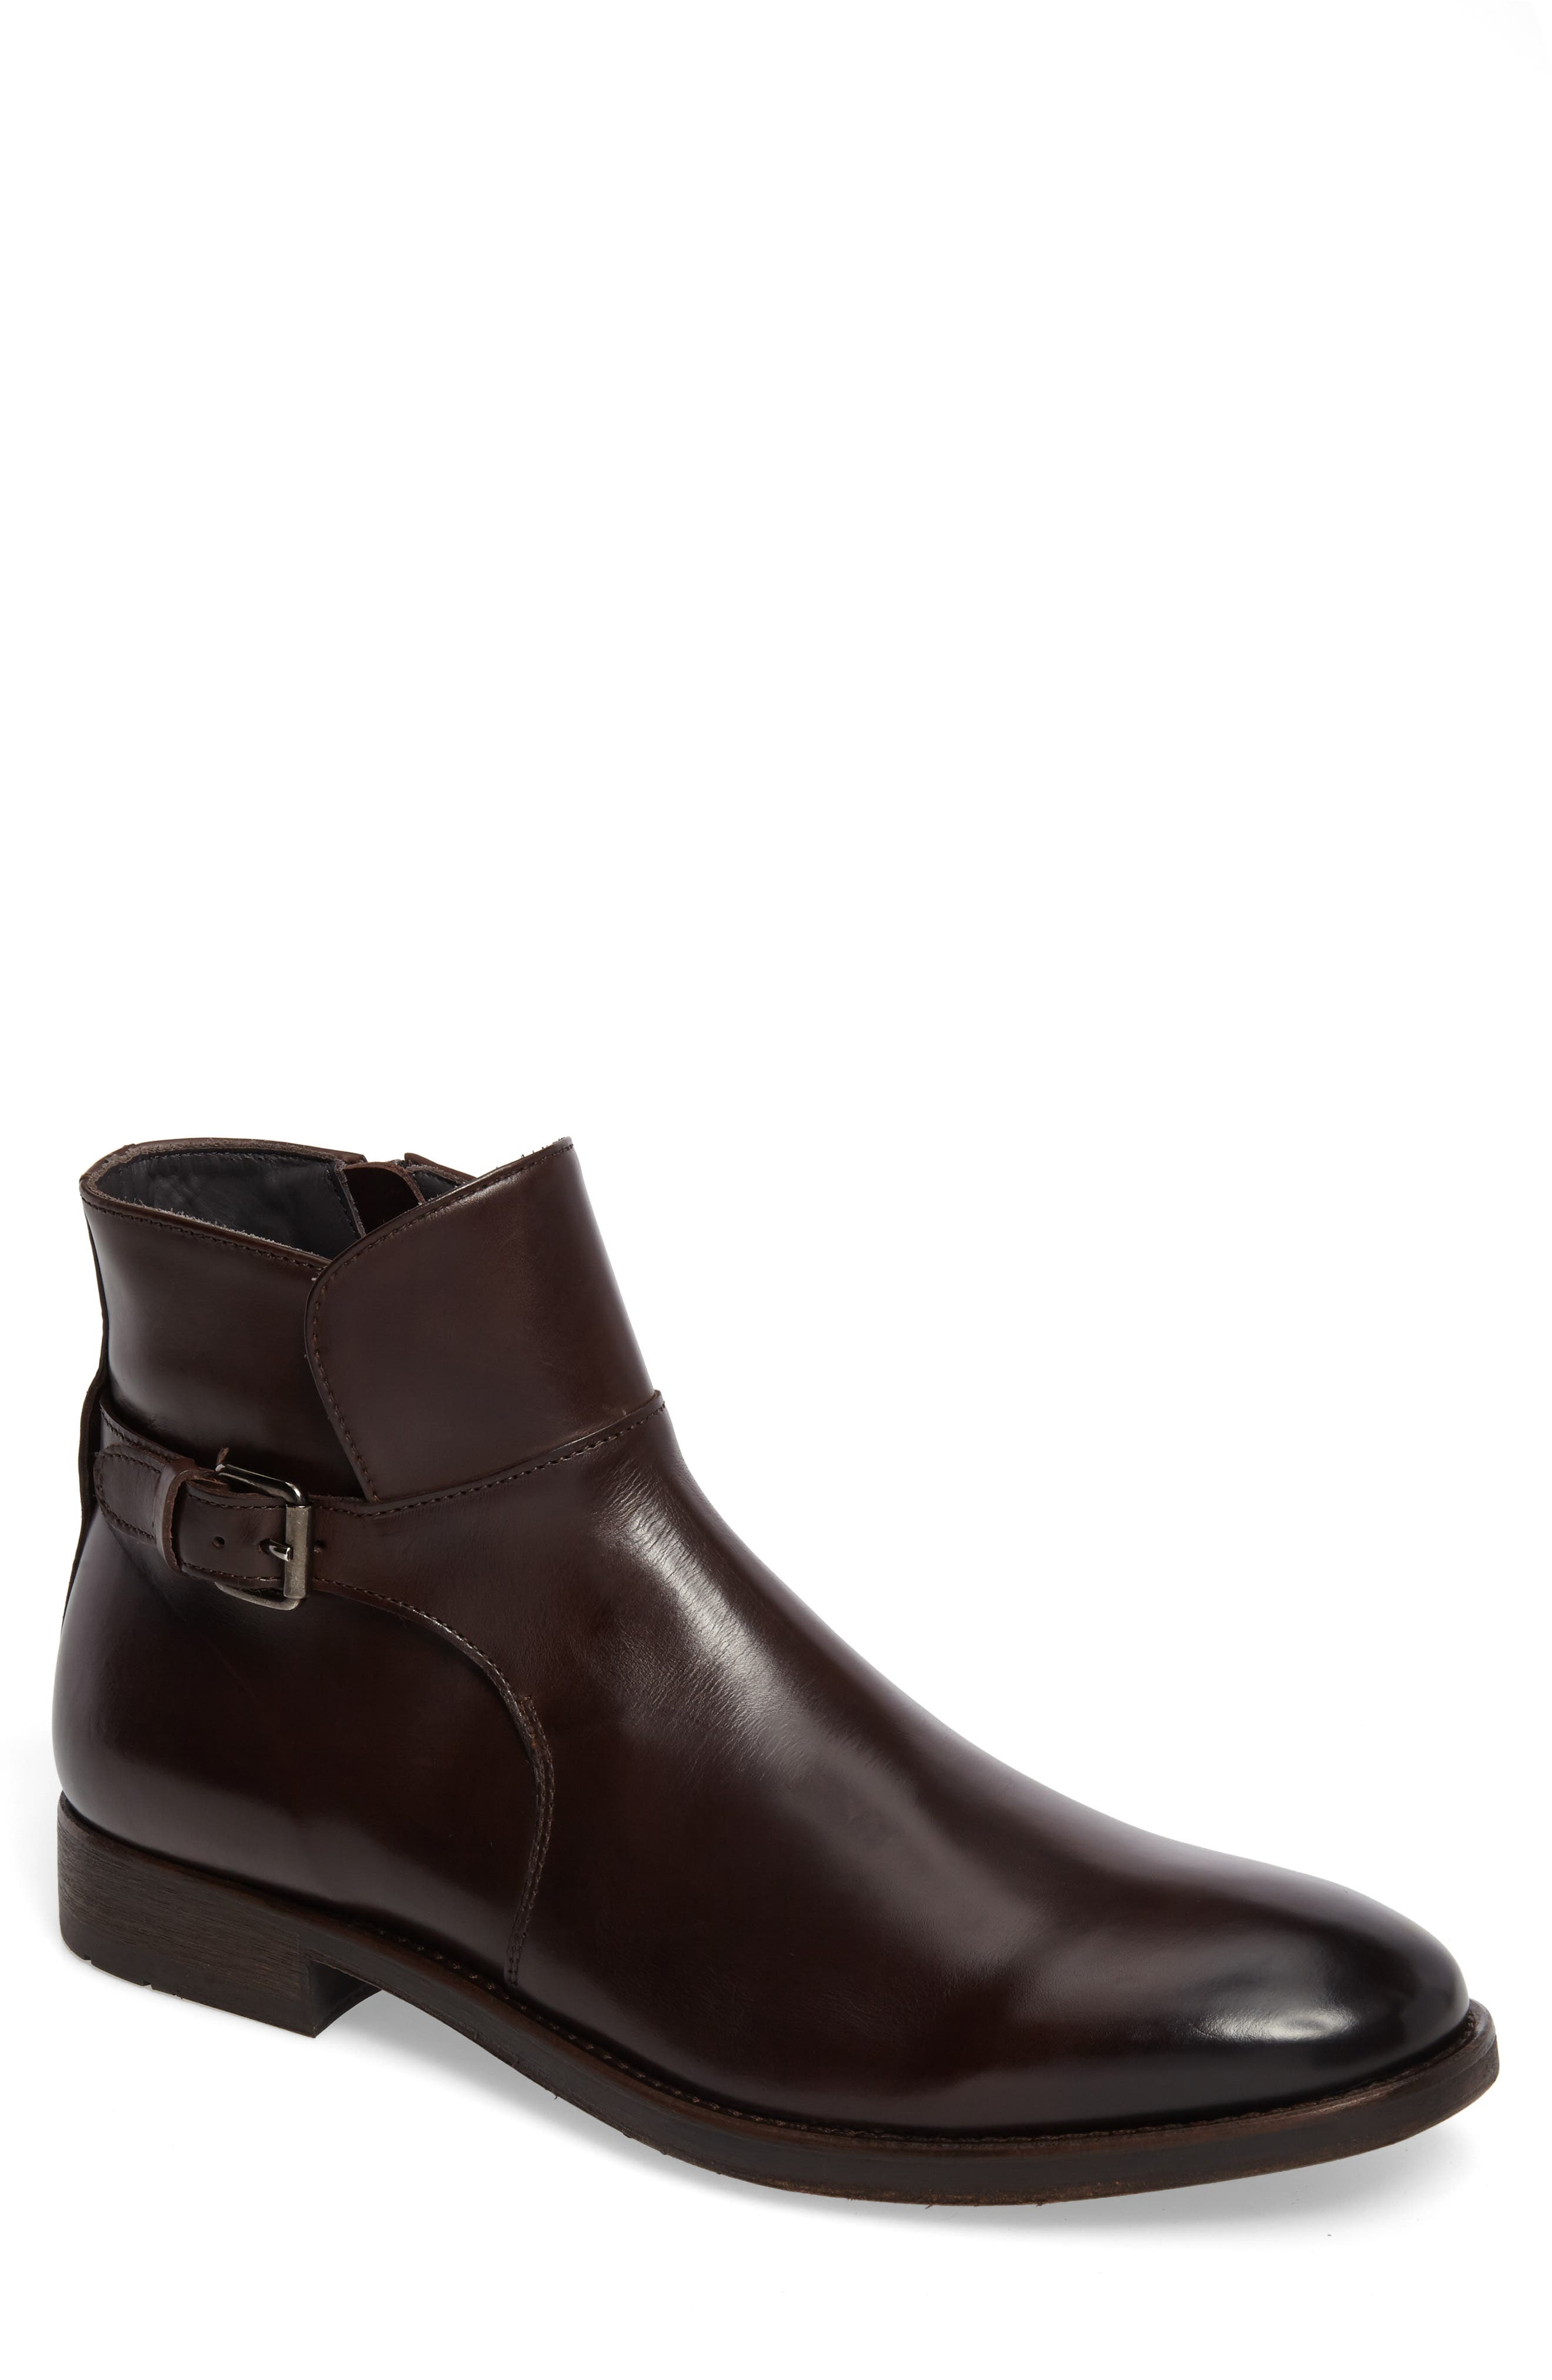 Heath Zip Boot,                             Main thumbnail 1, color,                             Moro